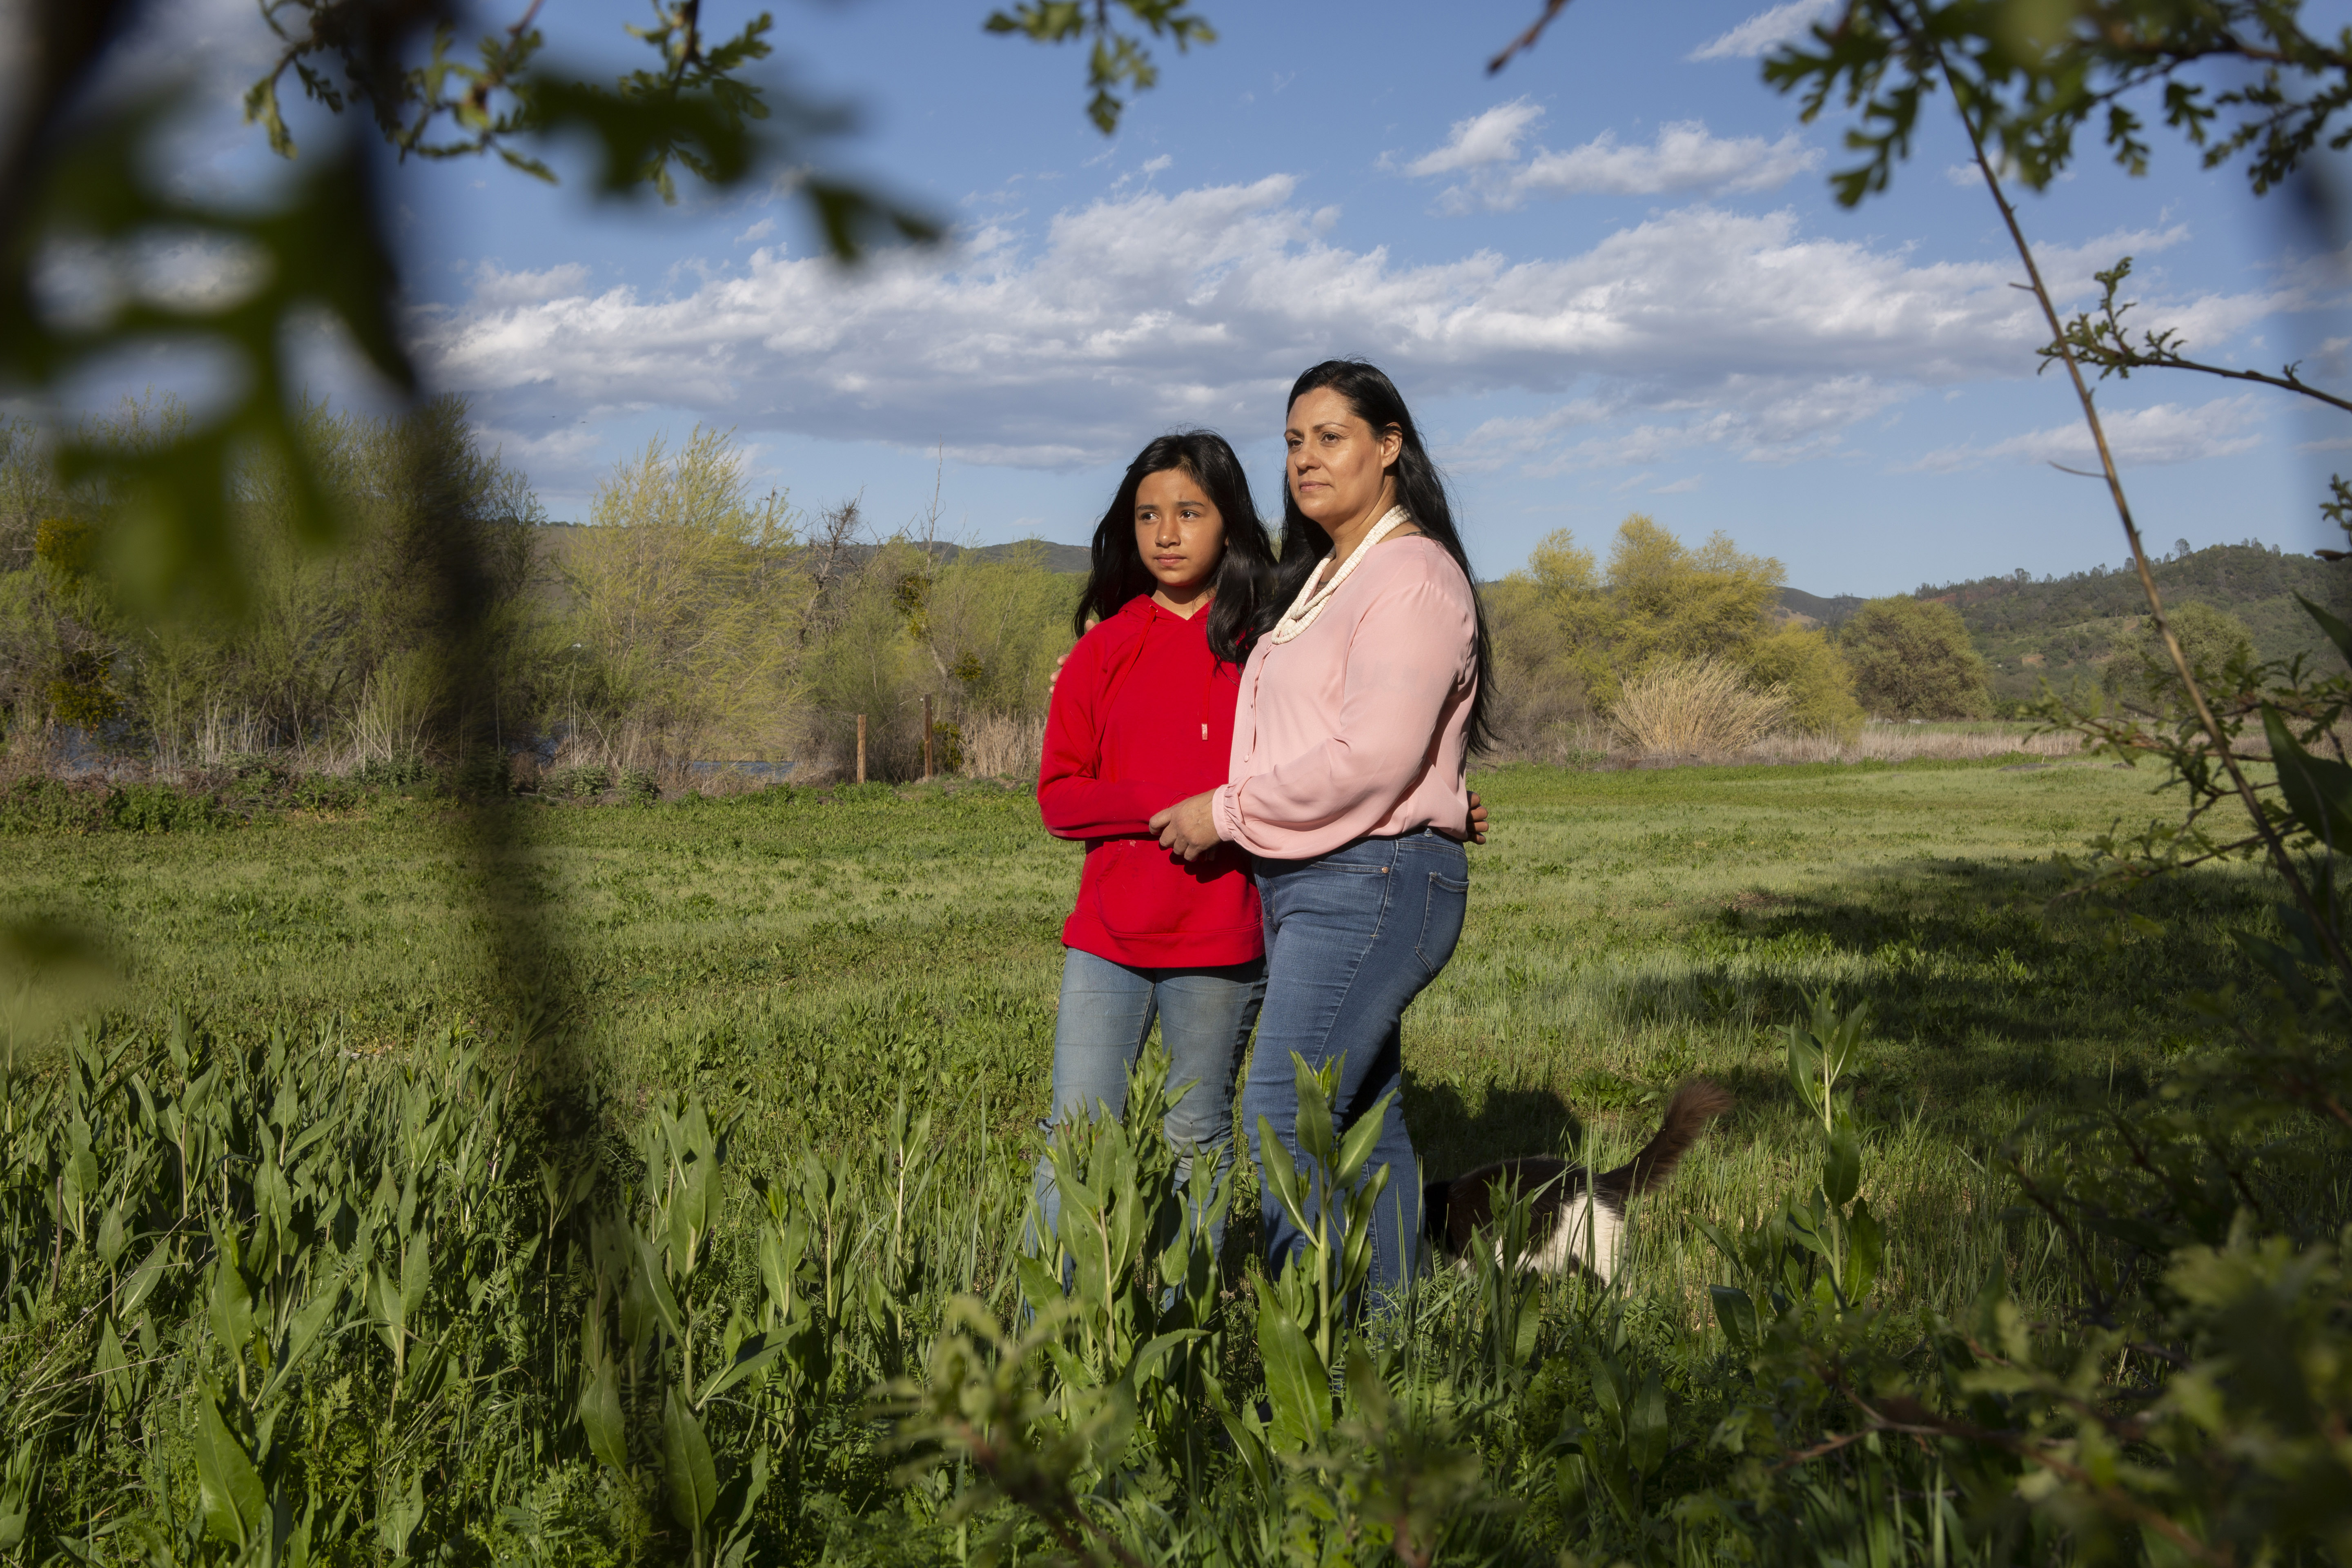 Quirina Geary and her daughter Niyatsatha Geary pose at their home in Clearlake Oaks, Calif., on Tuesday, April 13, 2021. MUST CREDIT: Photo for The Washington Post by Rachel Bujalski